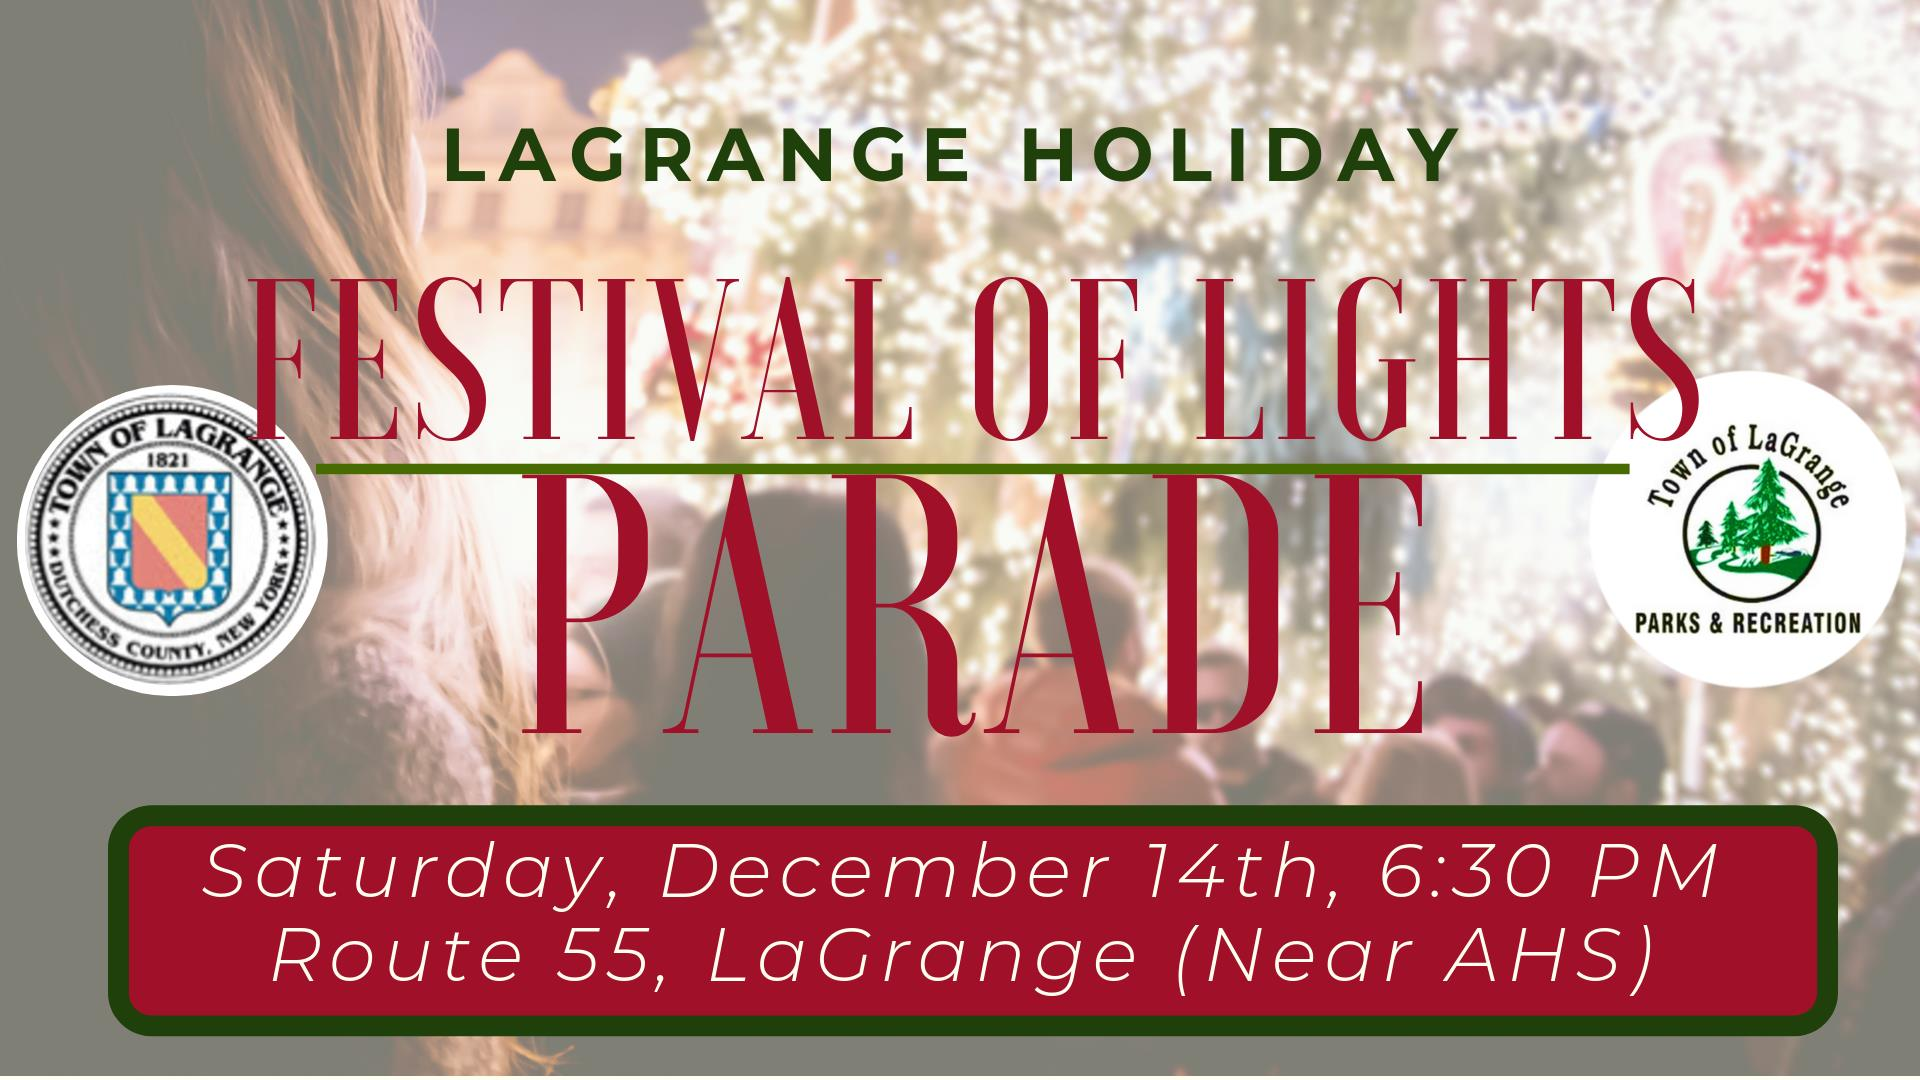 LaGrange Holiday Festival of Lights Parade